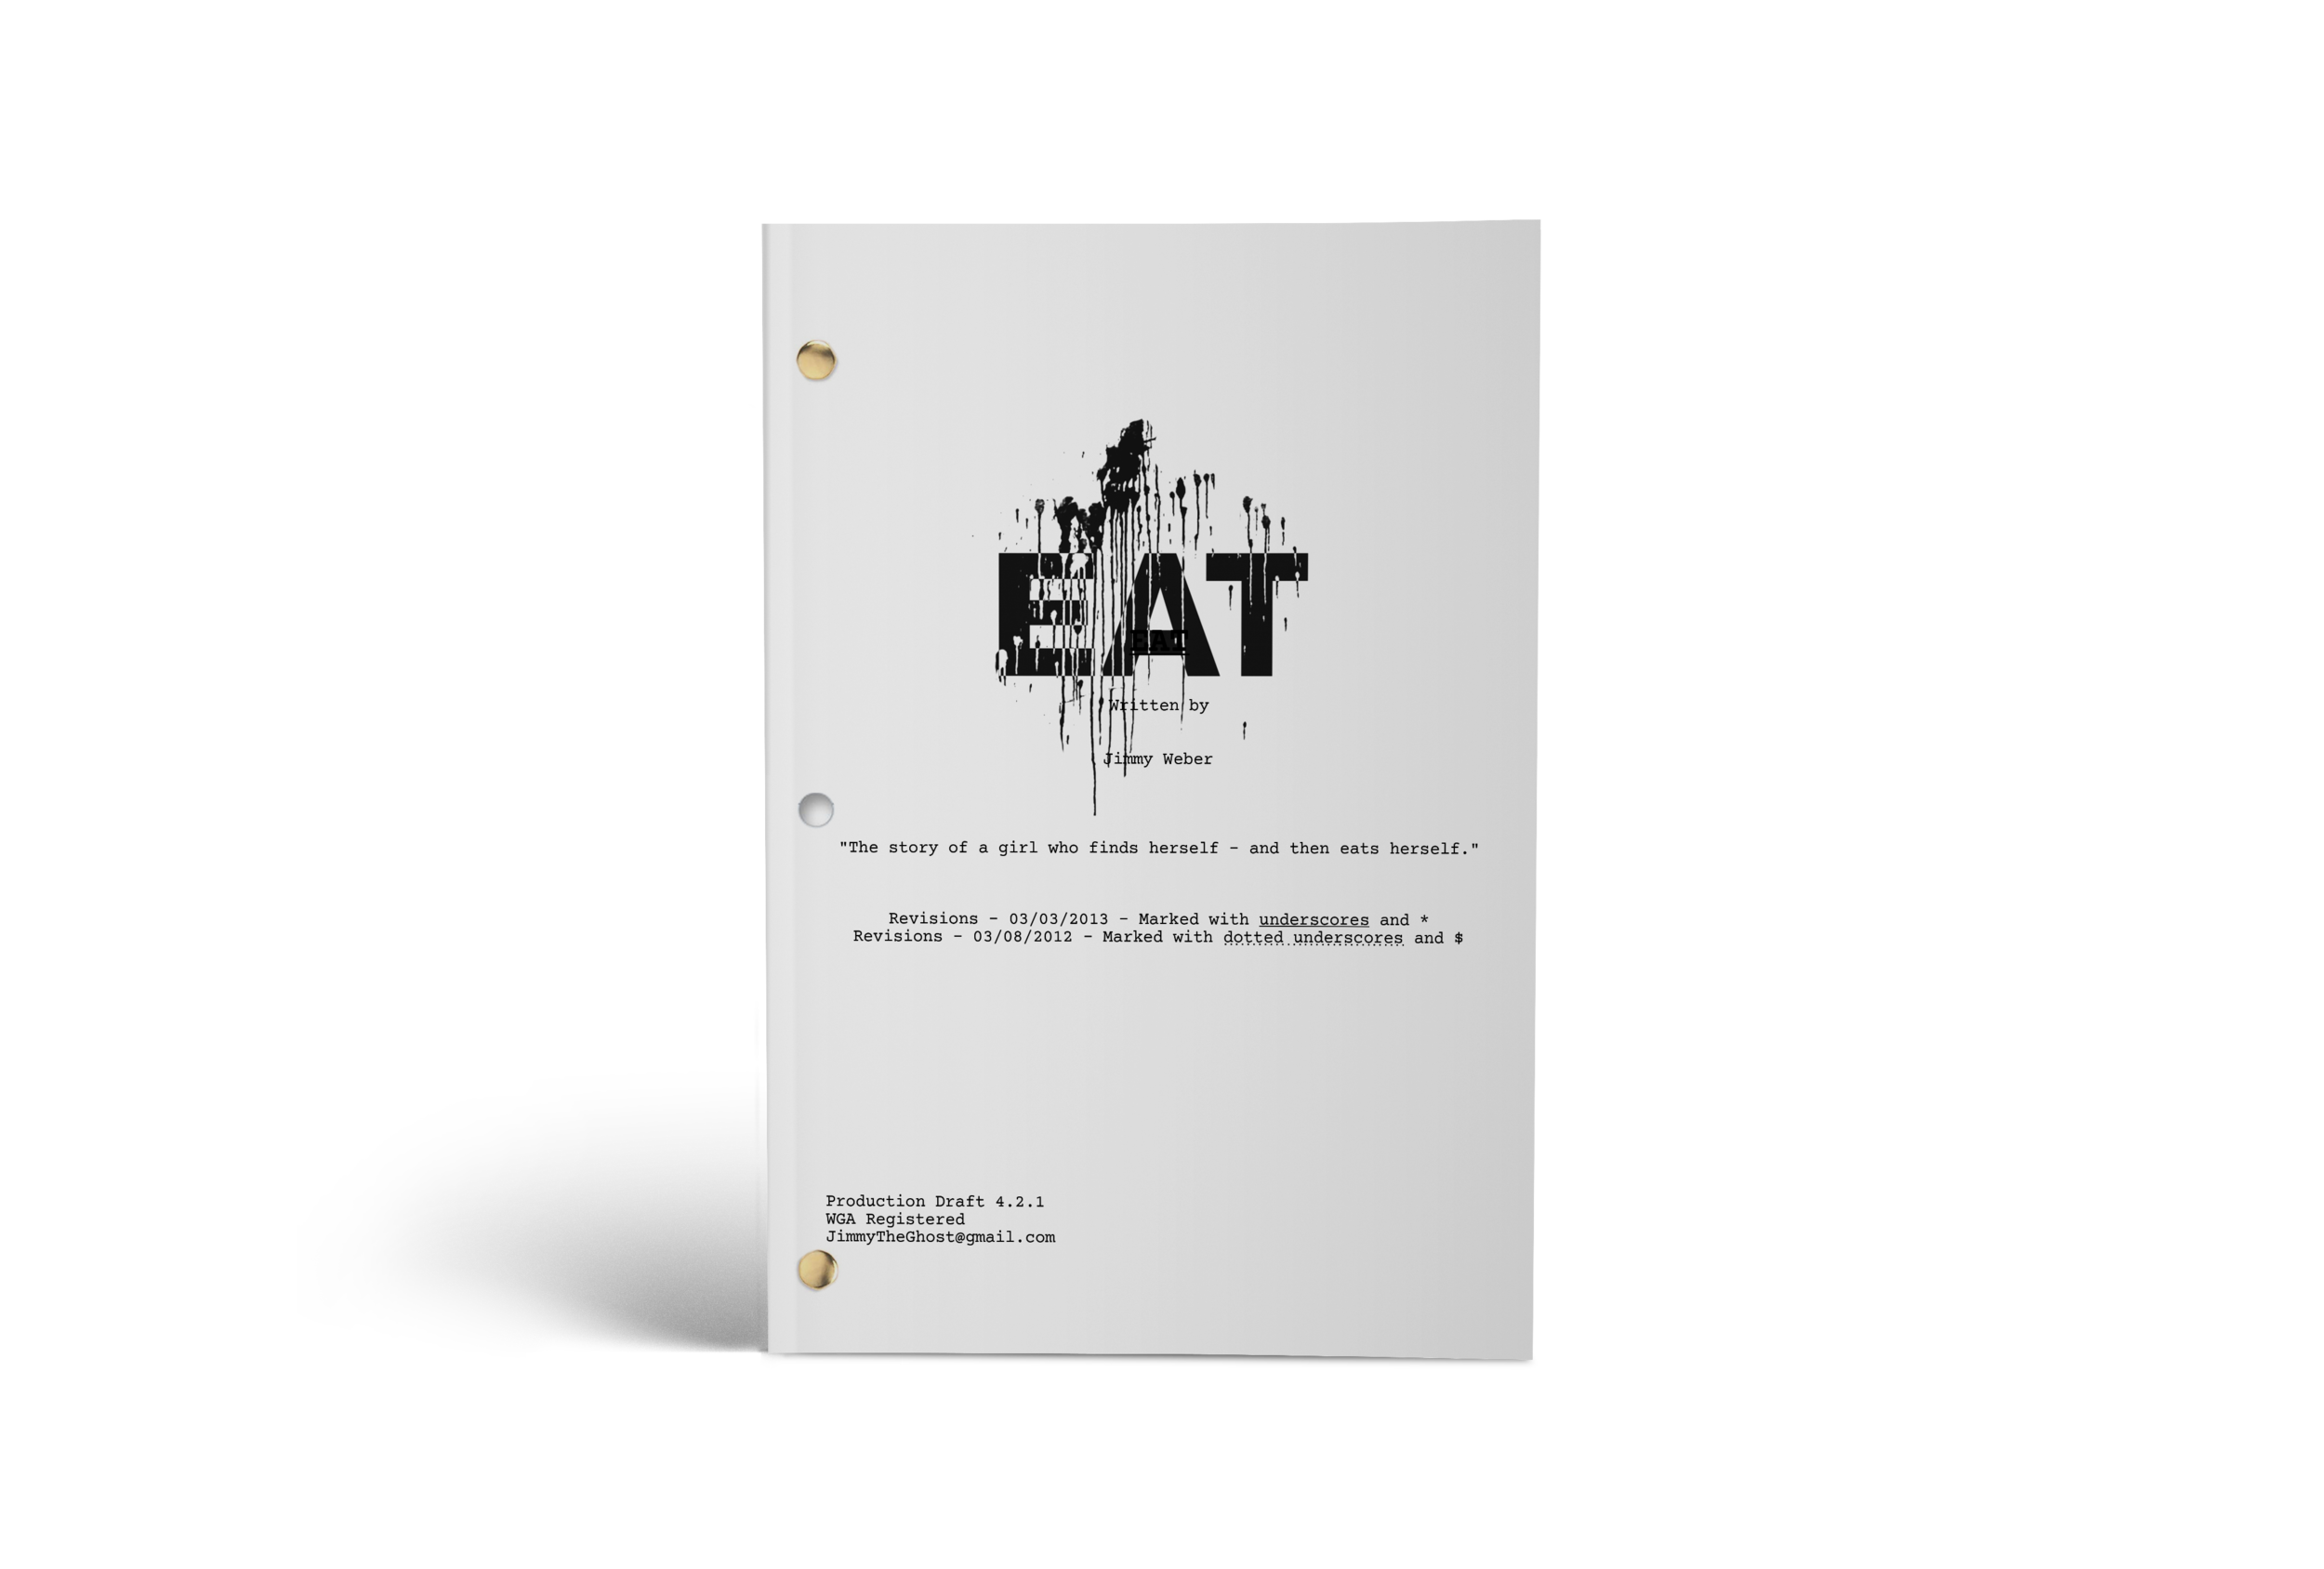 EAT - Final Production Draft. 101 Pages.